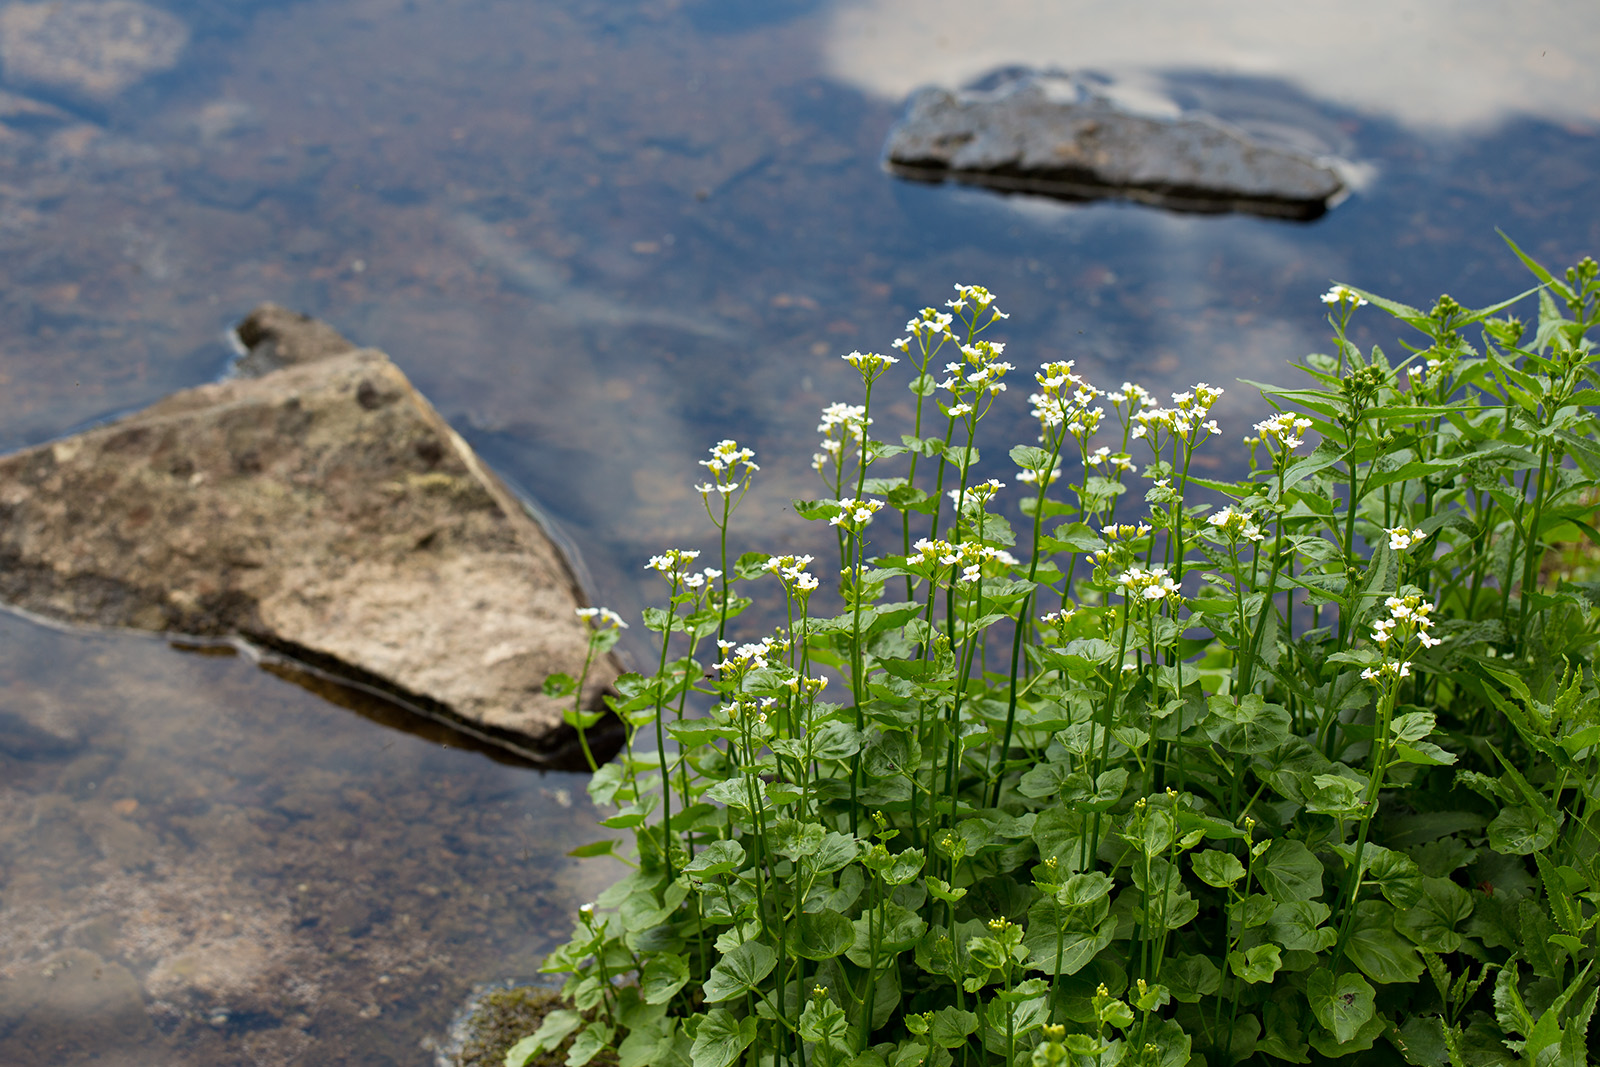 Cardamine cordifolia on the shores of Quiniscoe Lake